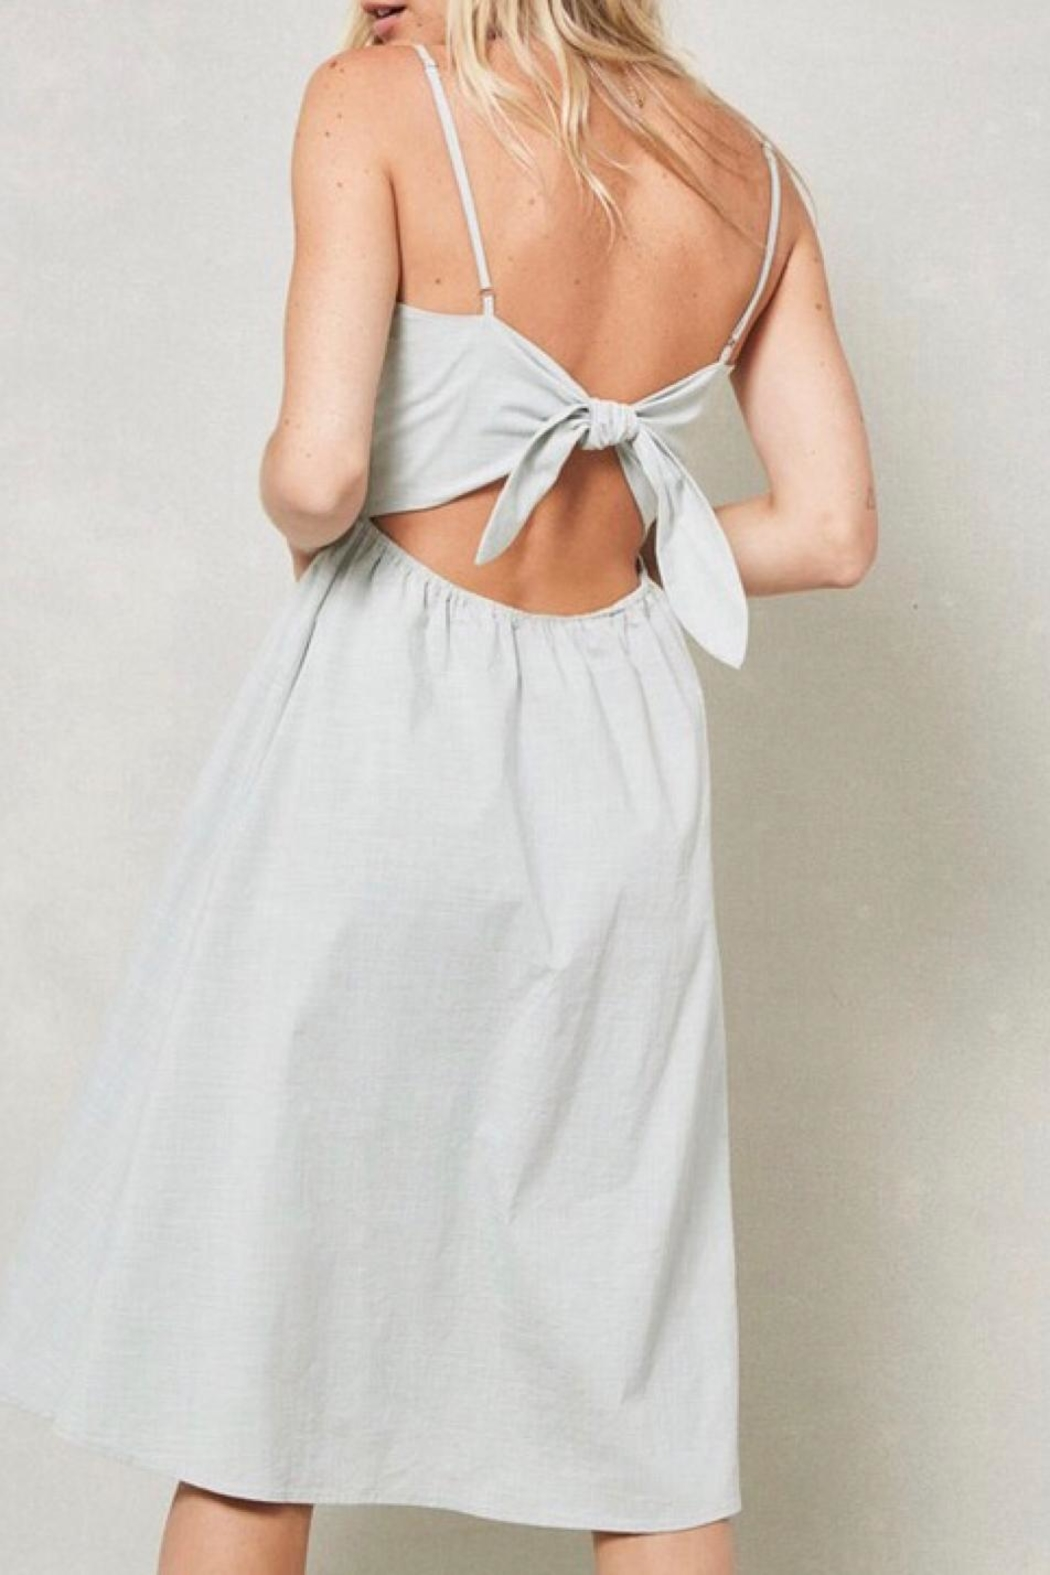 LuLu's Boutique Knotted-Back Midi Dress - Side Cropped Image